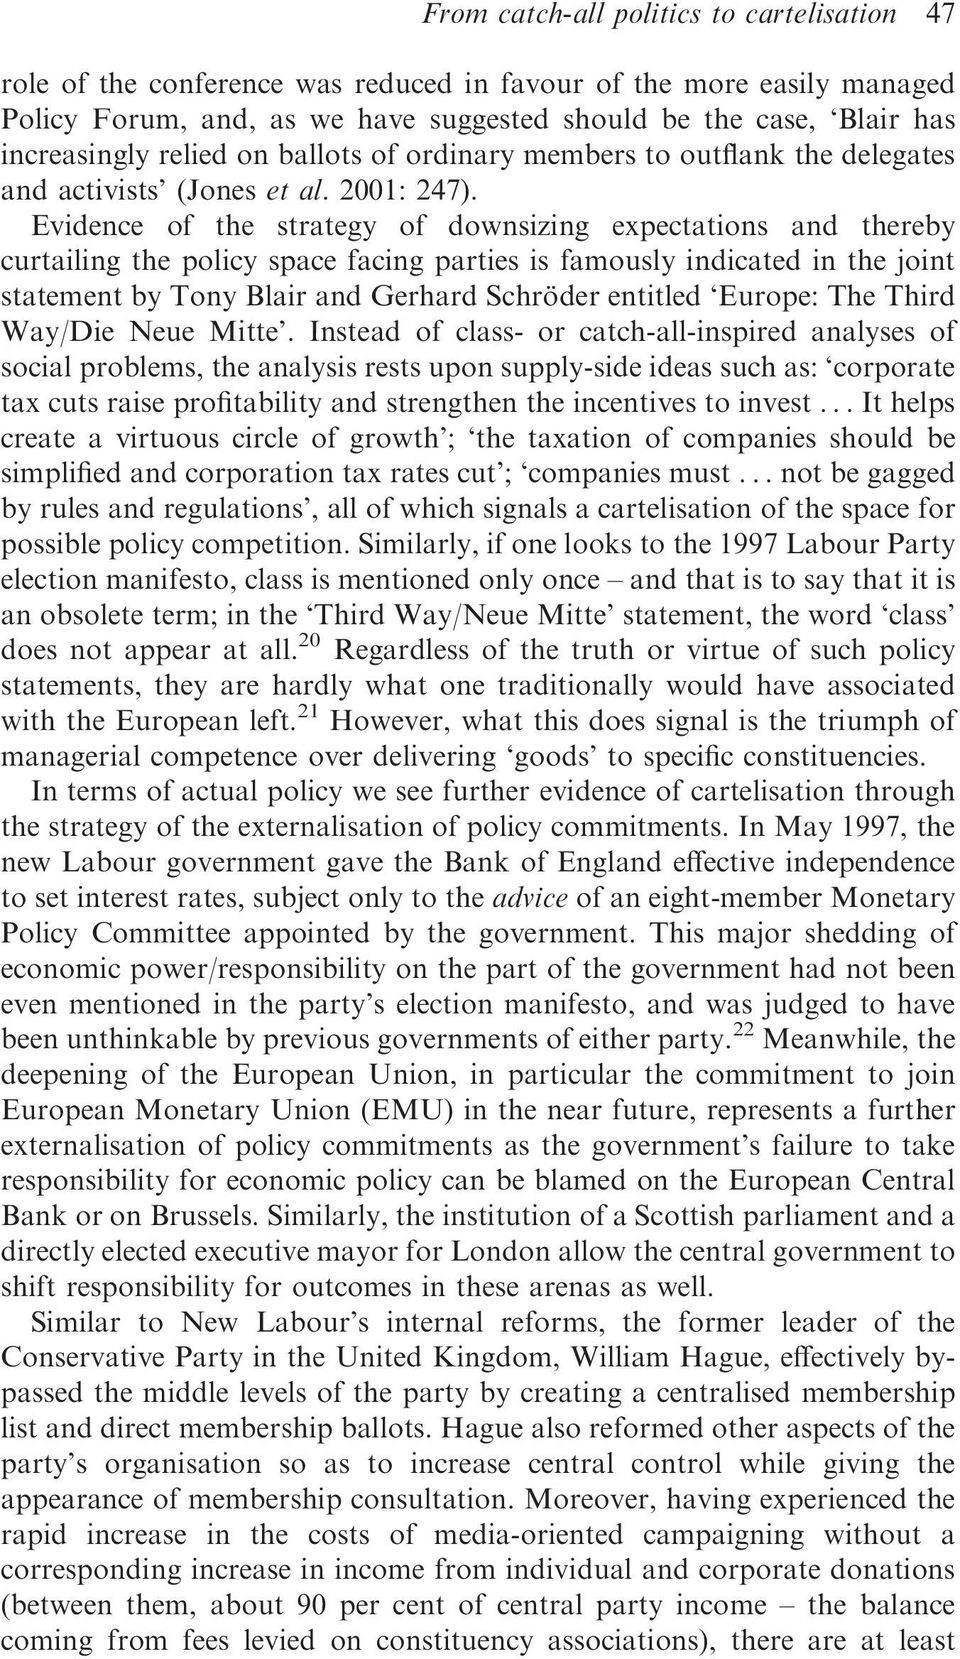 Evidence of the strategy of downsizing expectations and thereby curtailing the policy space facing parties is famously indicated in the joint statement by Tony Blair and Gerhard Schro der entitled